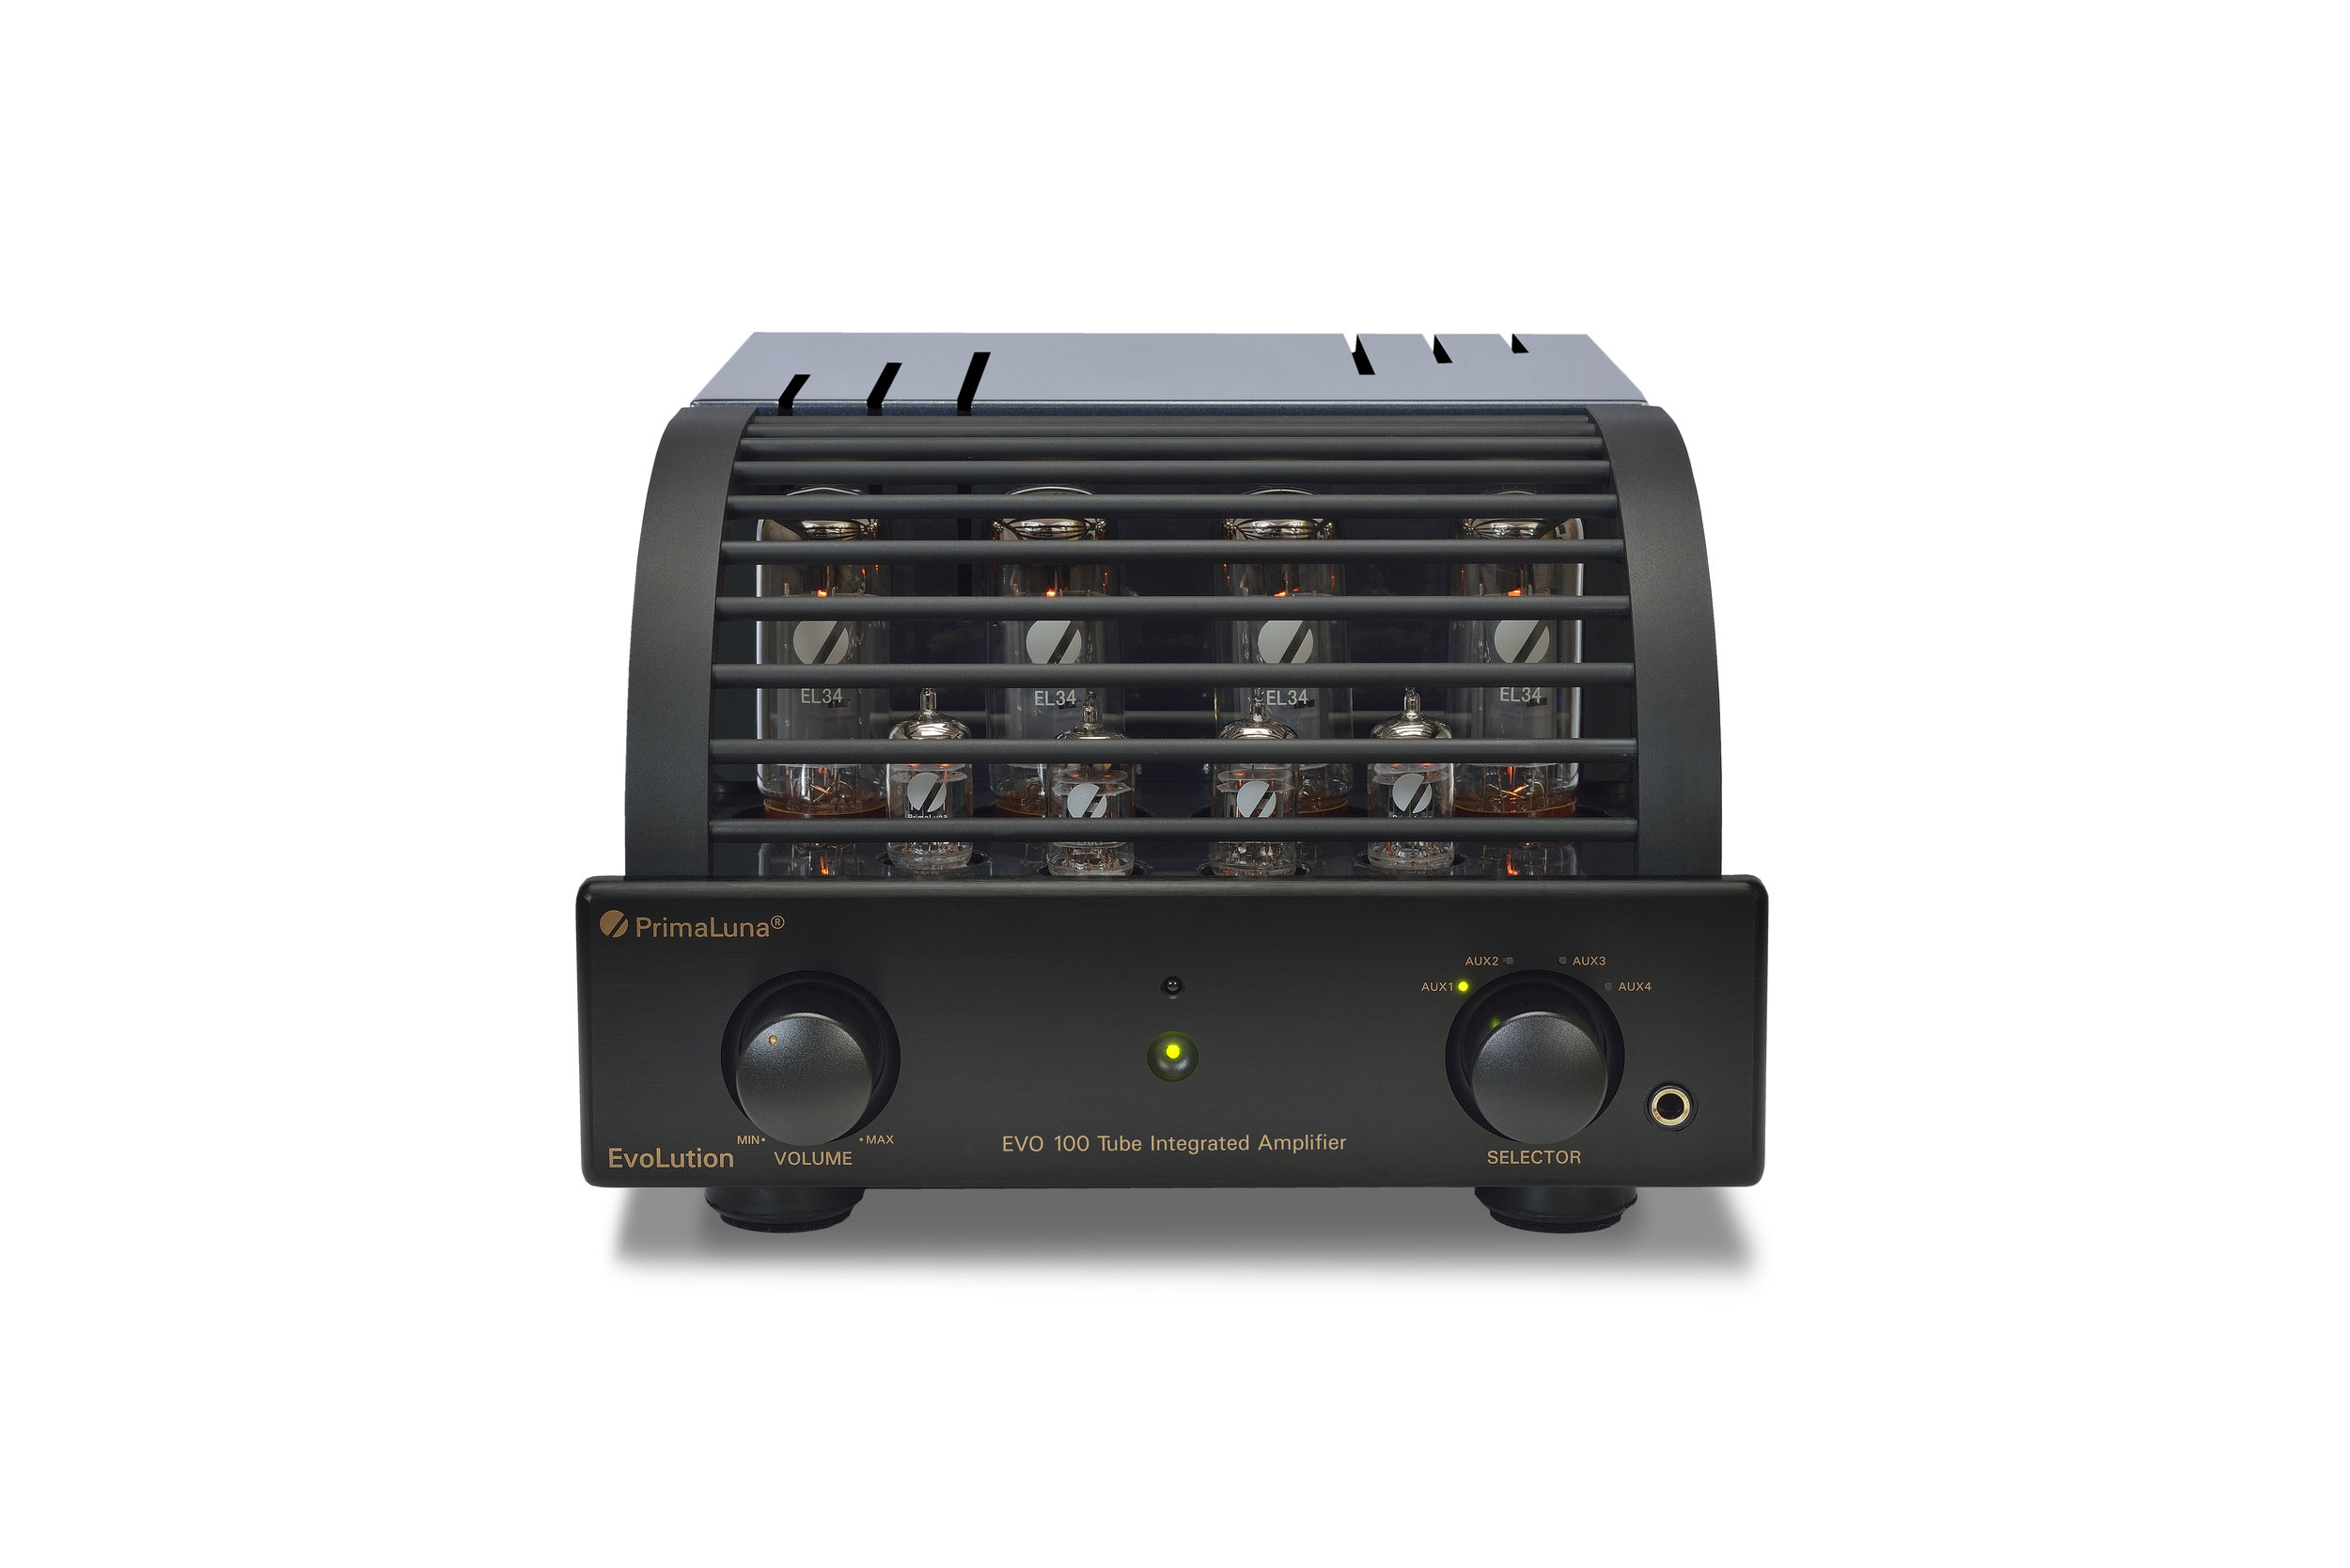 160b - PrimaLuna EVO 100 Tube Integrated Amplifier - black - front - white background.jpg